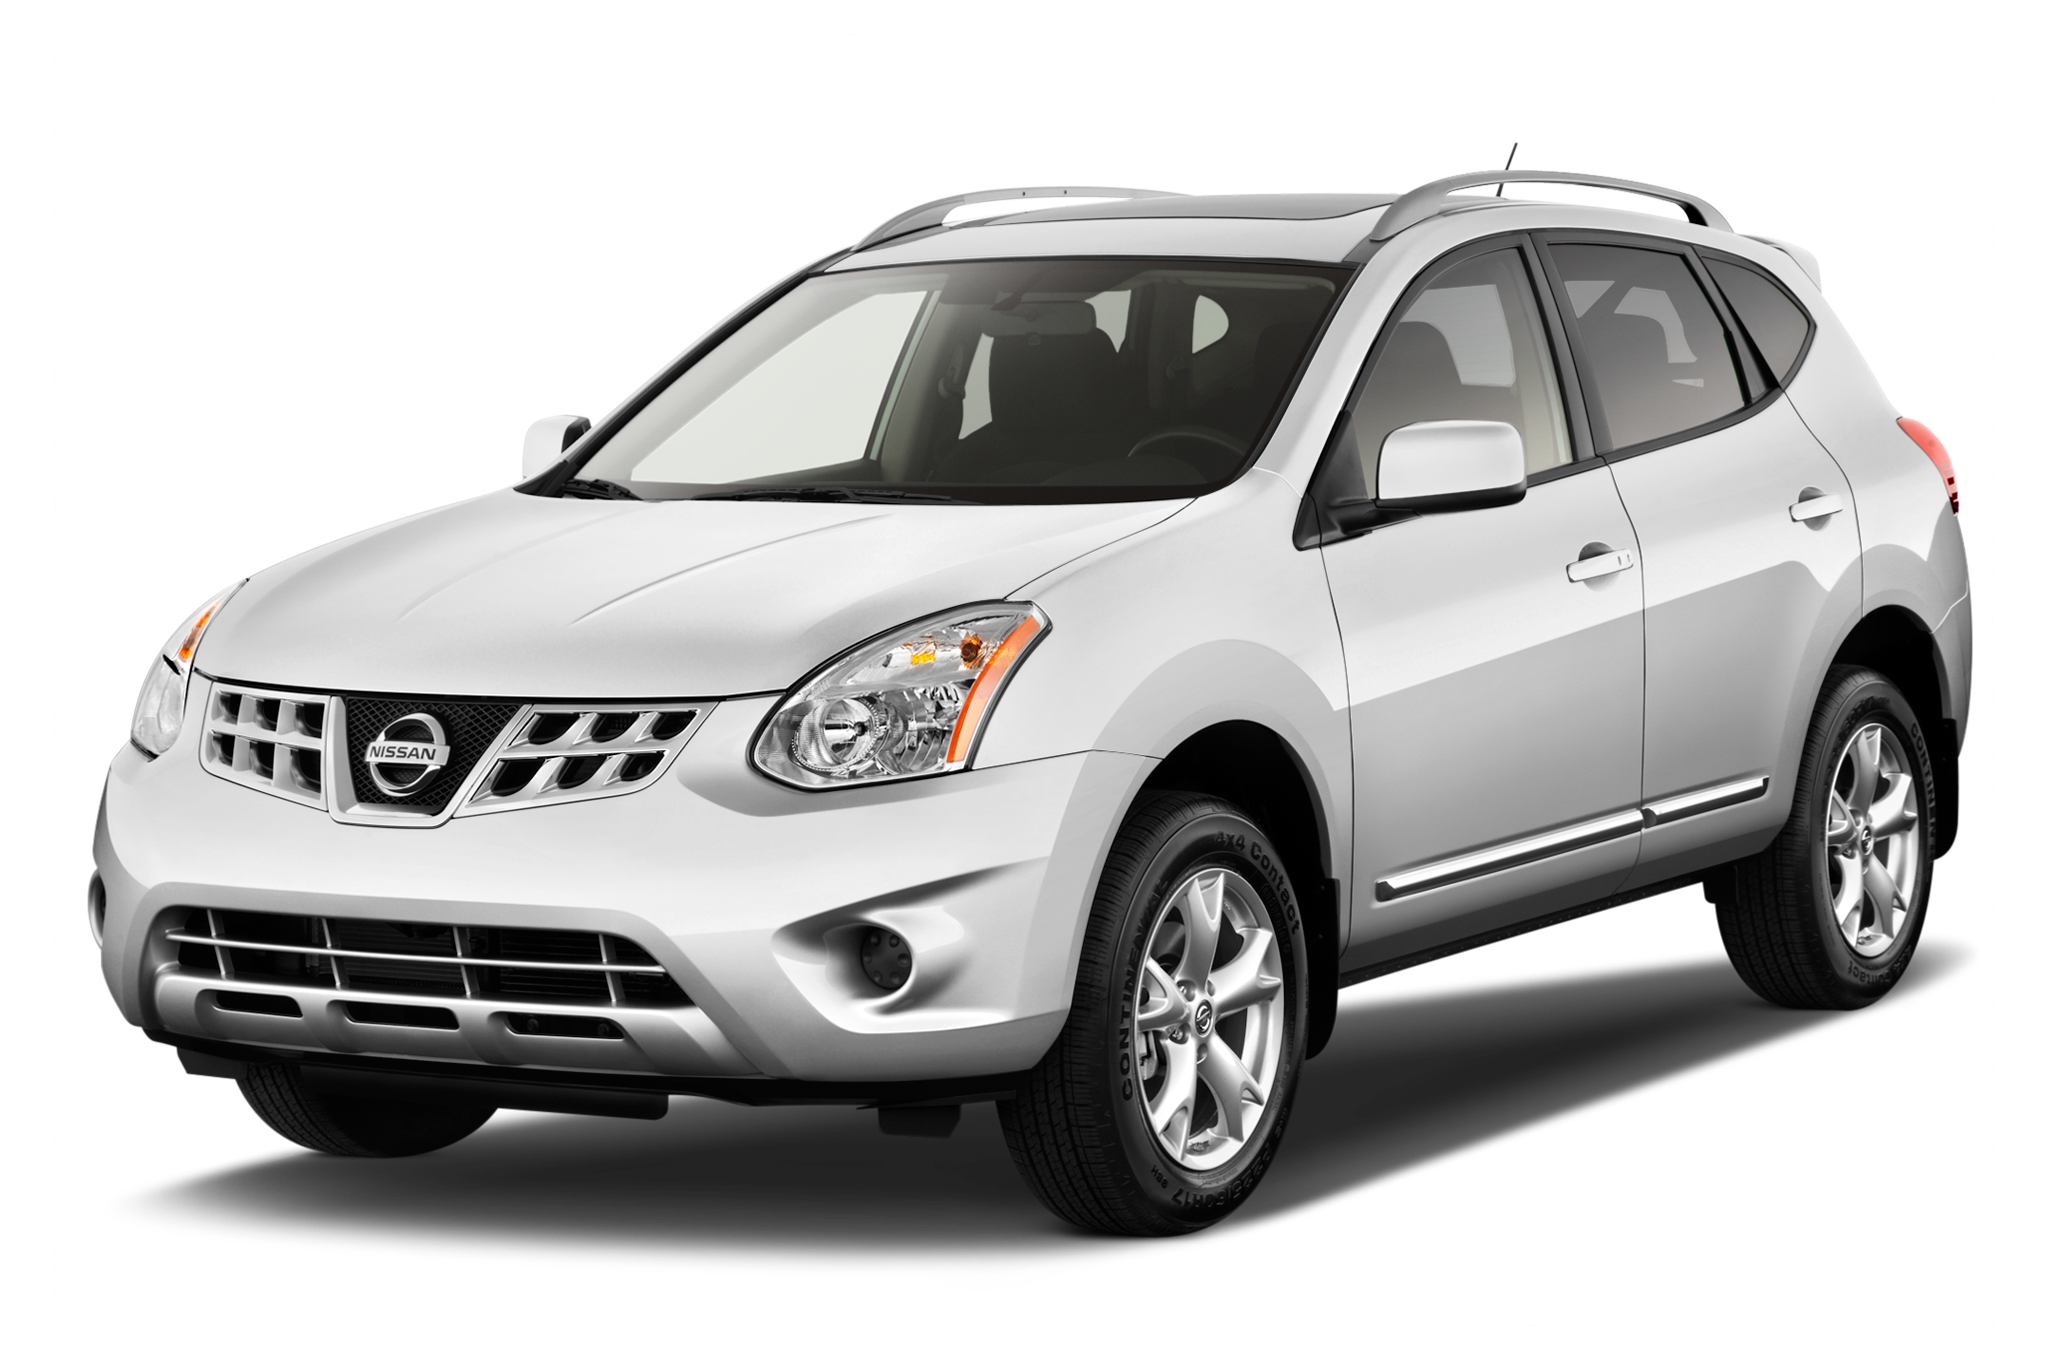 2012 nissan rogue overview msn autos. Black Bedroom Furniture Sets. Home Design Ideas